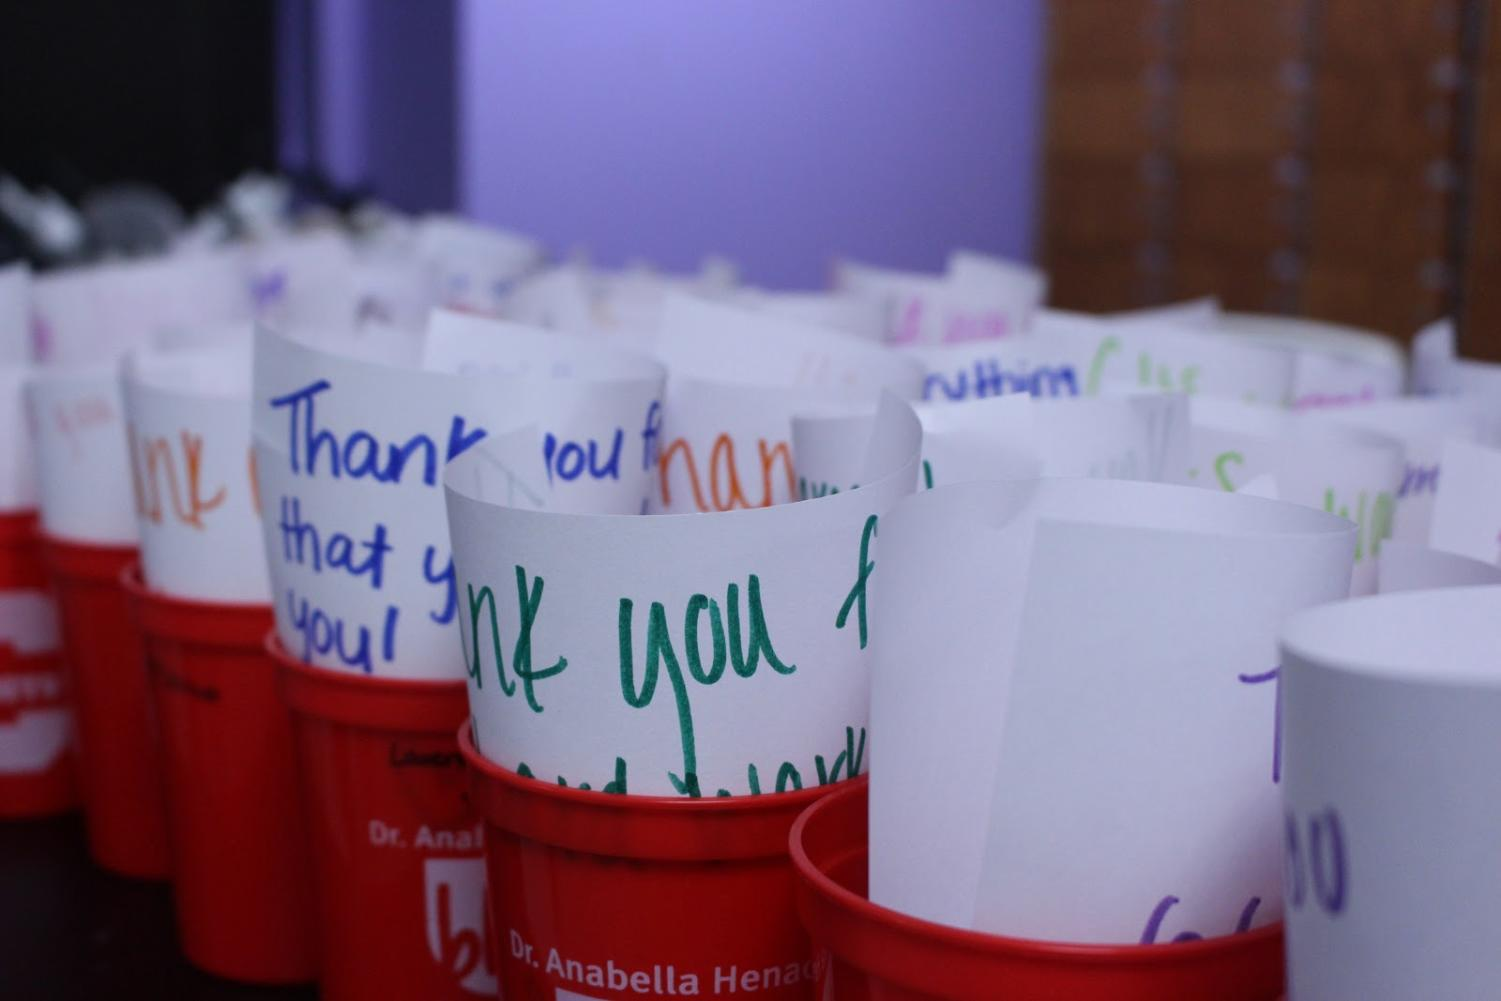 During seventh period on Tuesday, Student Council provided thoughtful notes in solo cups with scented bath salts at the bottom, and each cup was labeled with the scent.